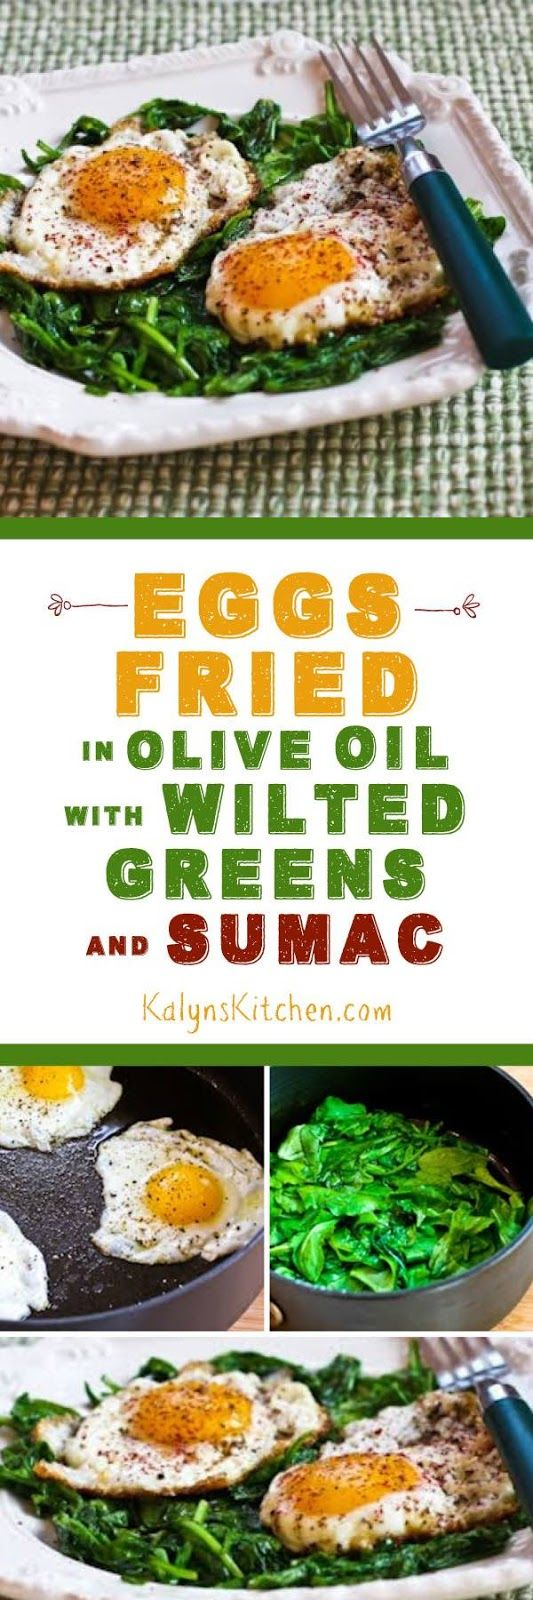 Eggs Fried in Olive Oil with Wilted Greens and Sumac are a delicious low-carb breakfast idea. [found on KalynsKitchen.com]